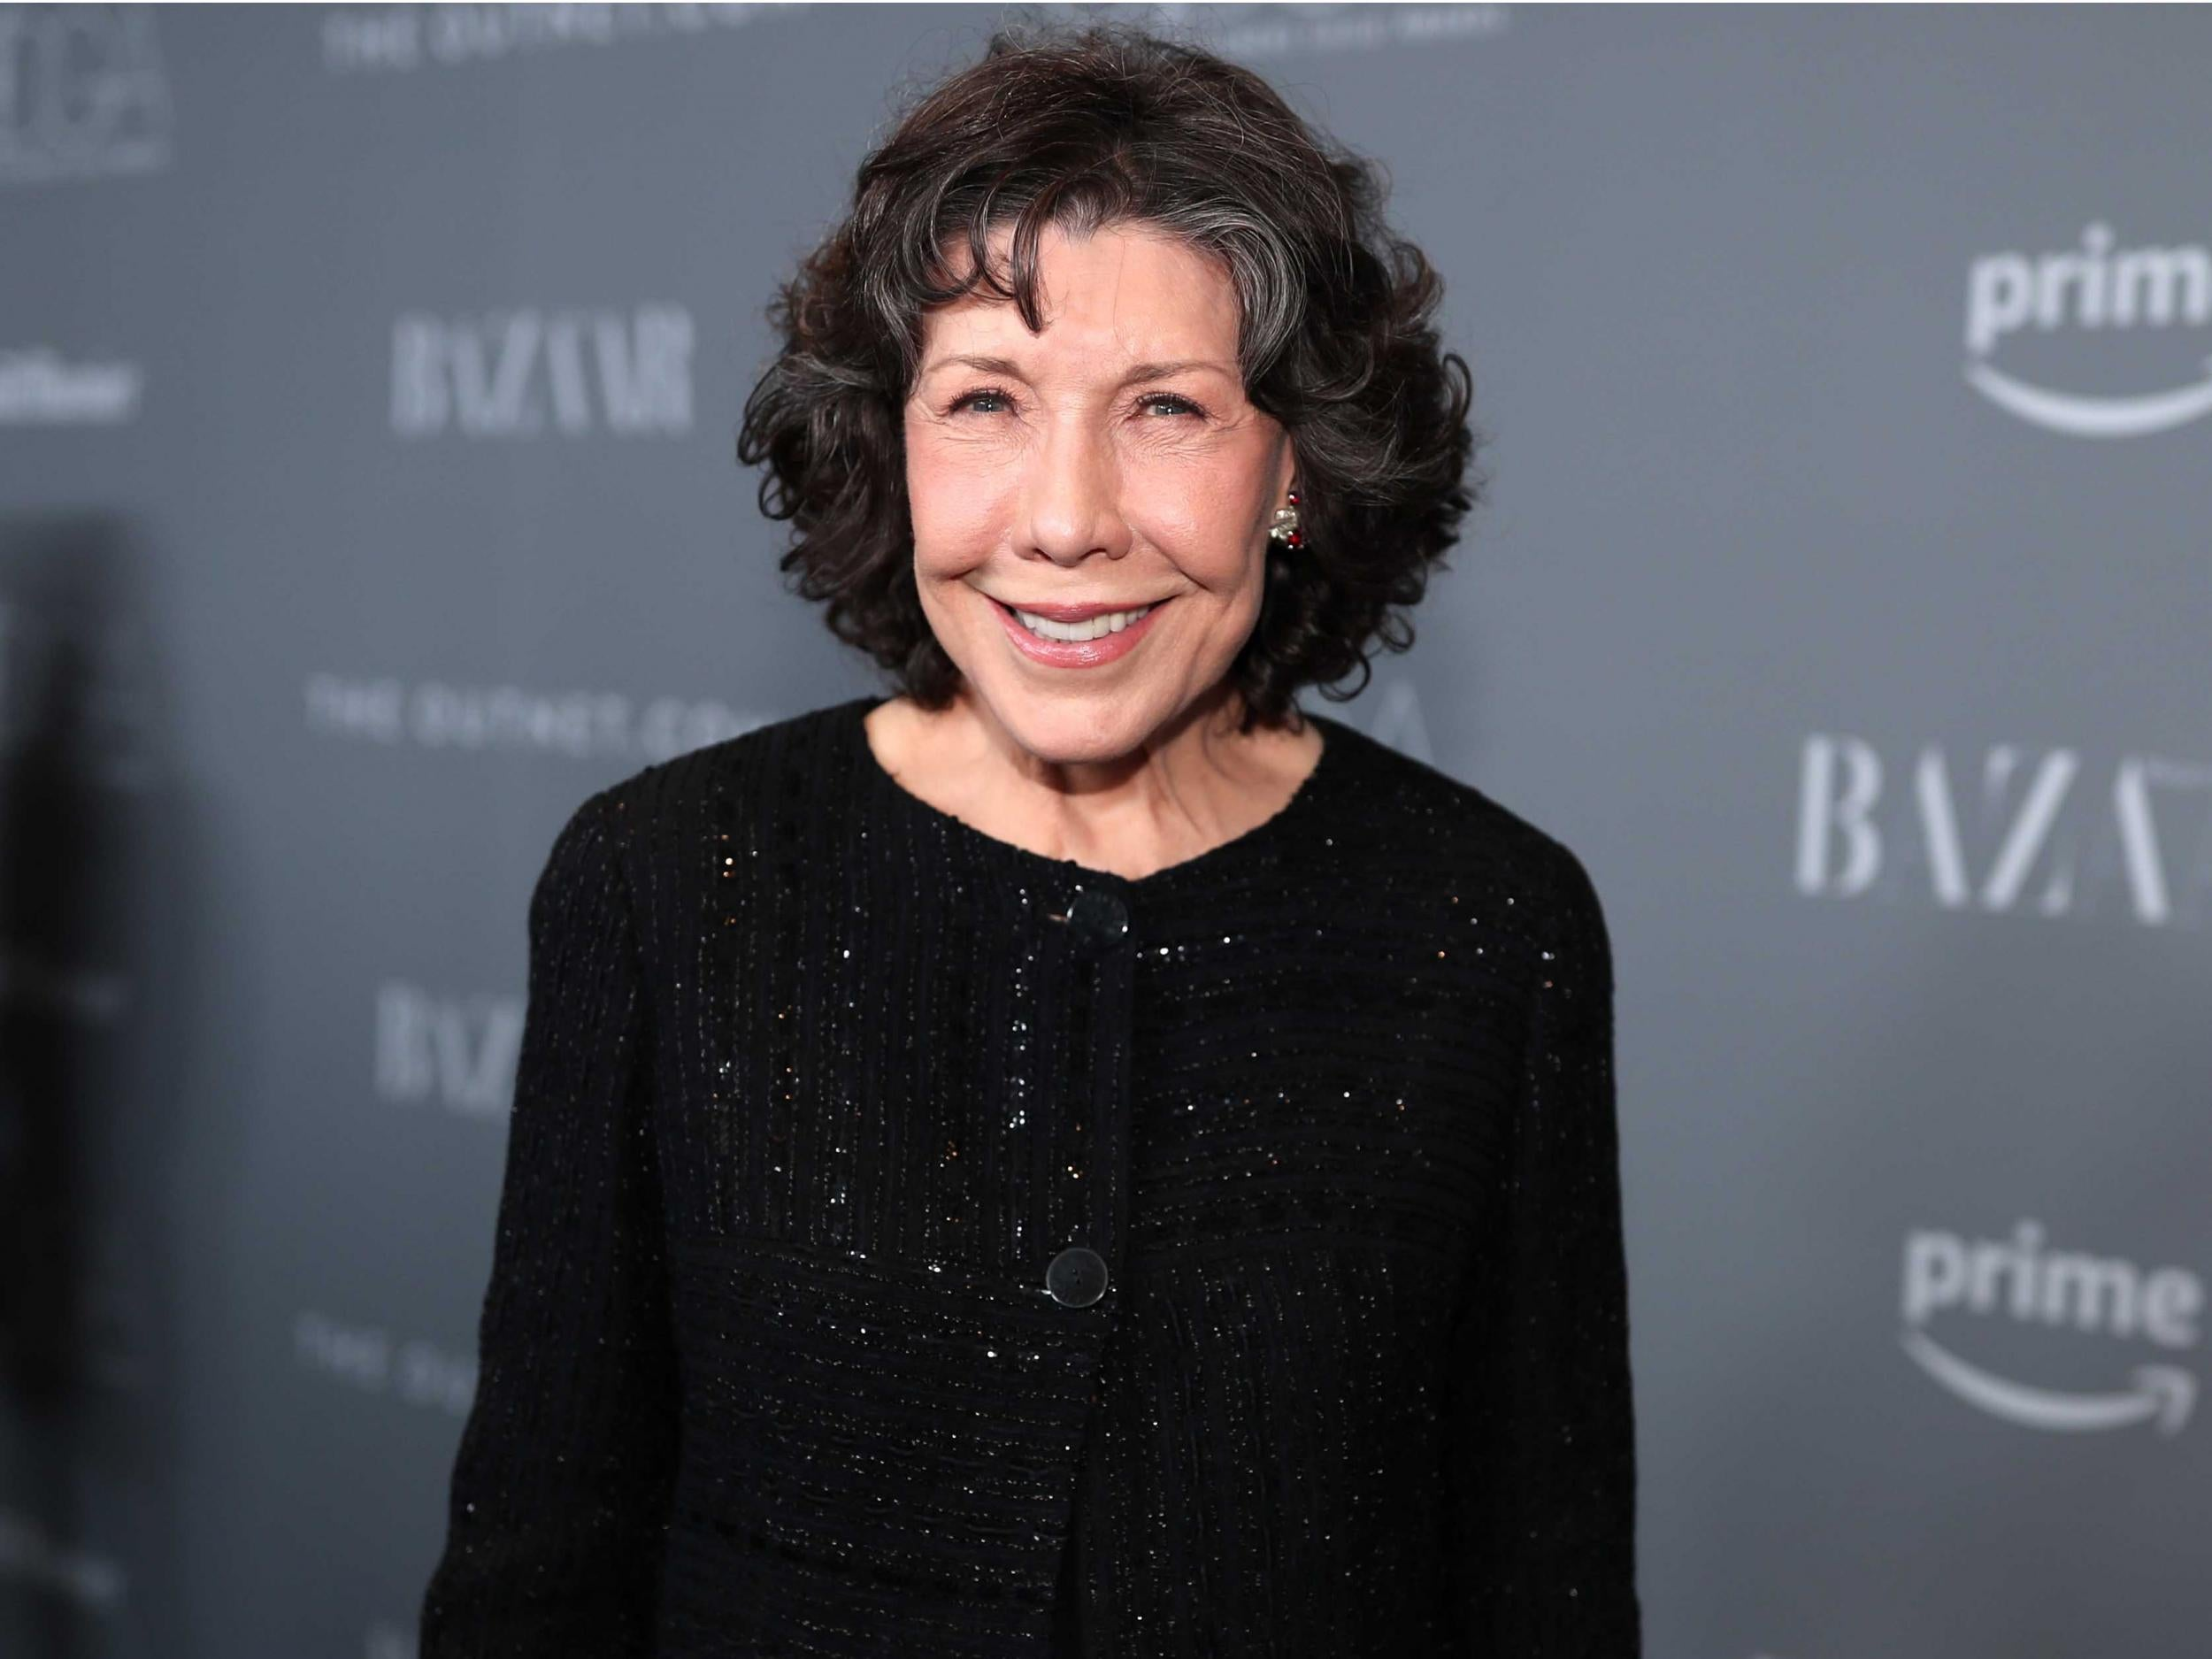 Discussion on this topic: Jeff Douglas, lily-tomlin/